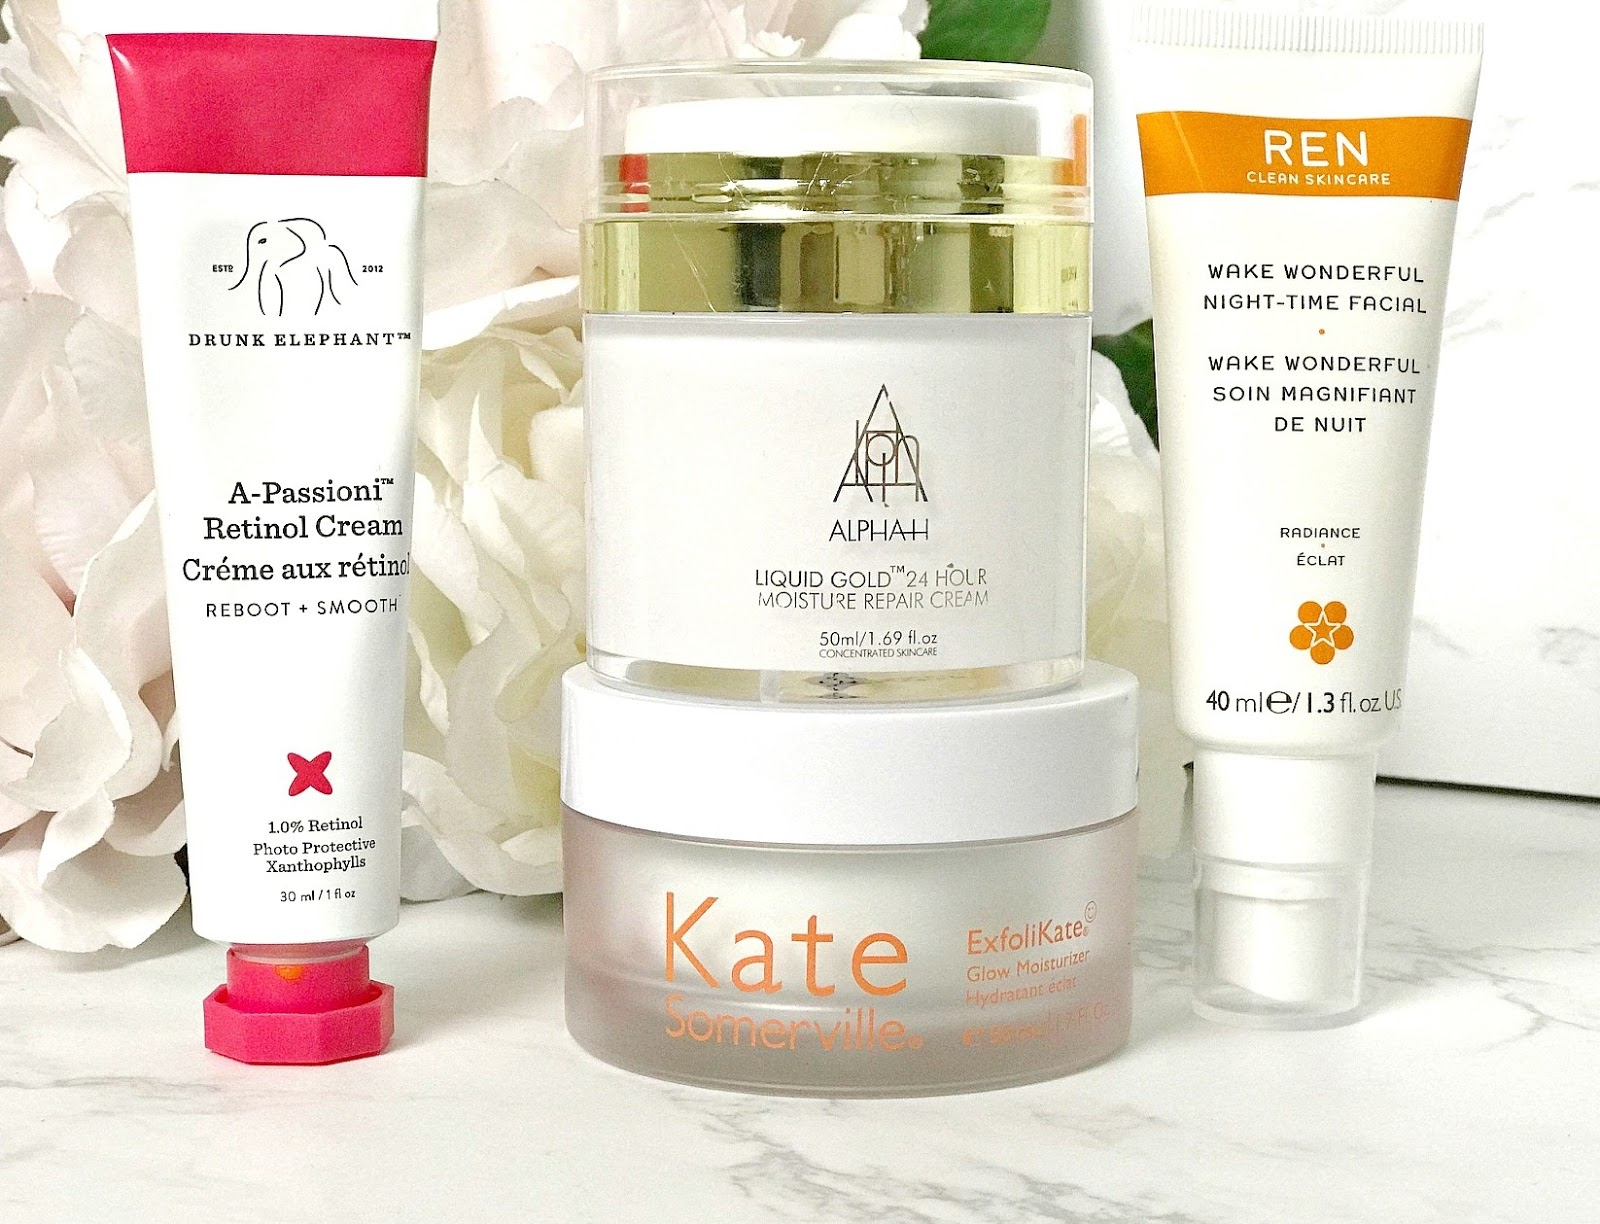 Cult Beauty Discount Code, Drunk Elephant A-Passioni Retinol Cream Review, Alpha-H Liquid Gold 24 Hour Moisture Repair Cream Review, REN Wake Wonderful Night Time Facial Review, Kate Somerville Exfolikate Glow Moisturiser Review